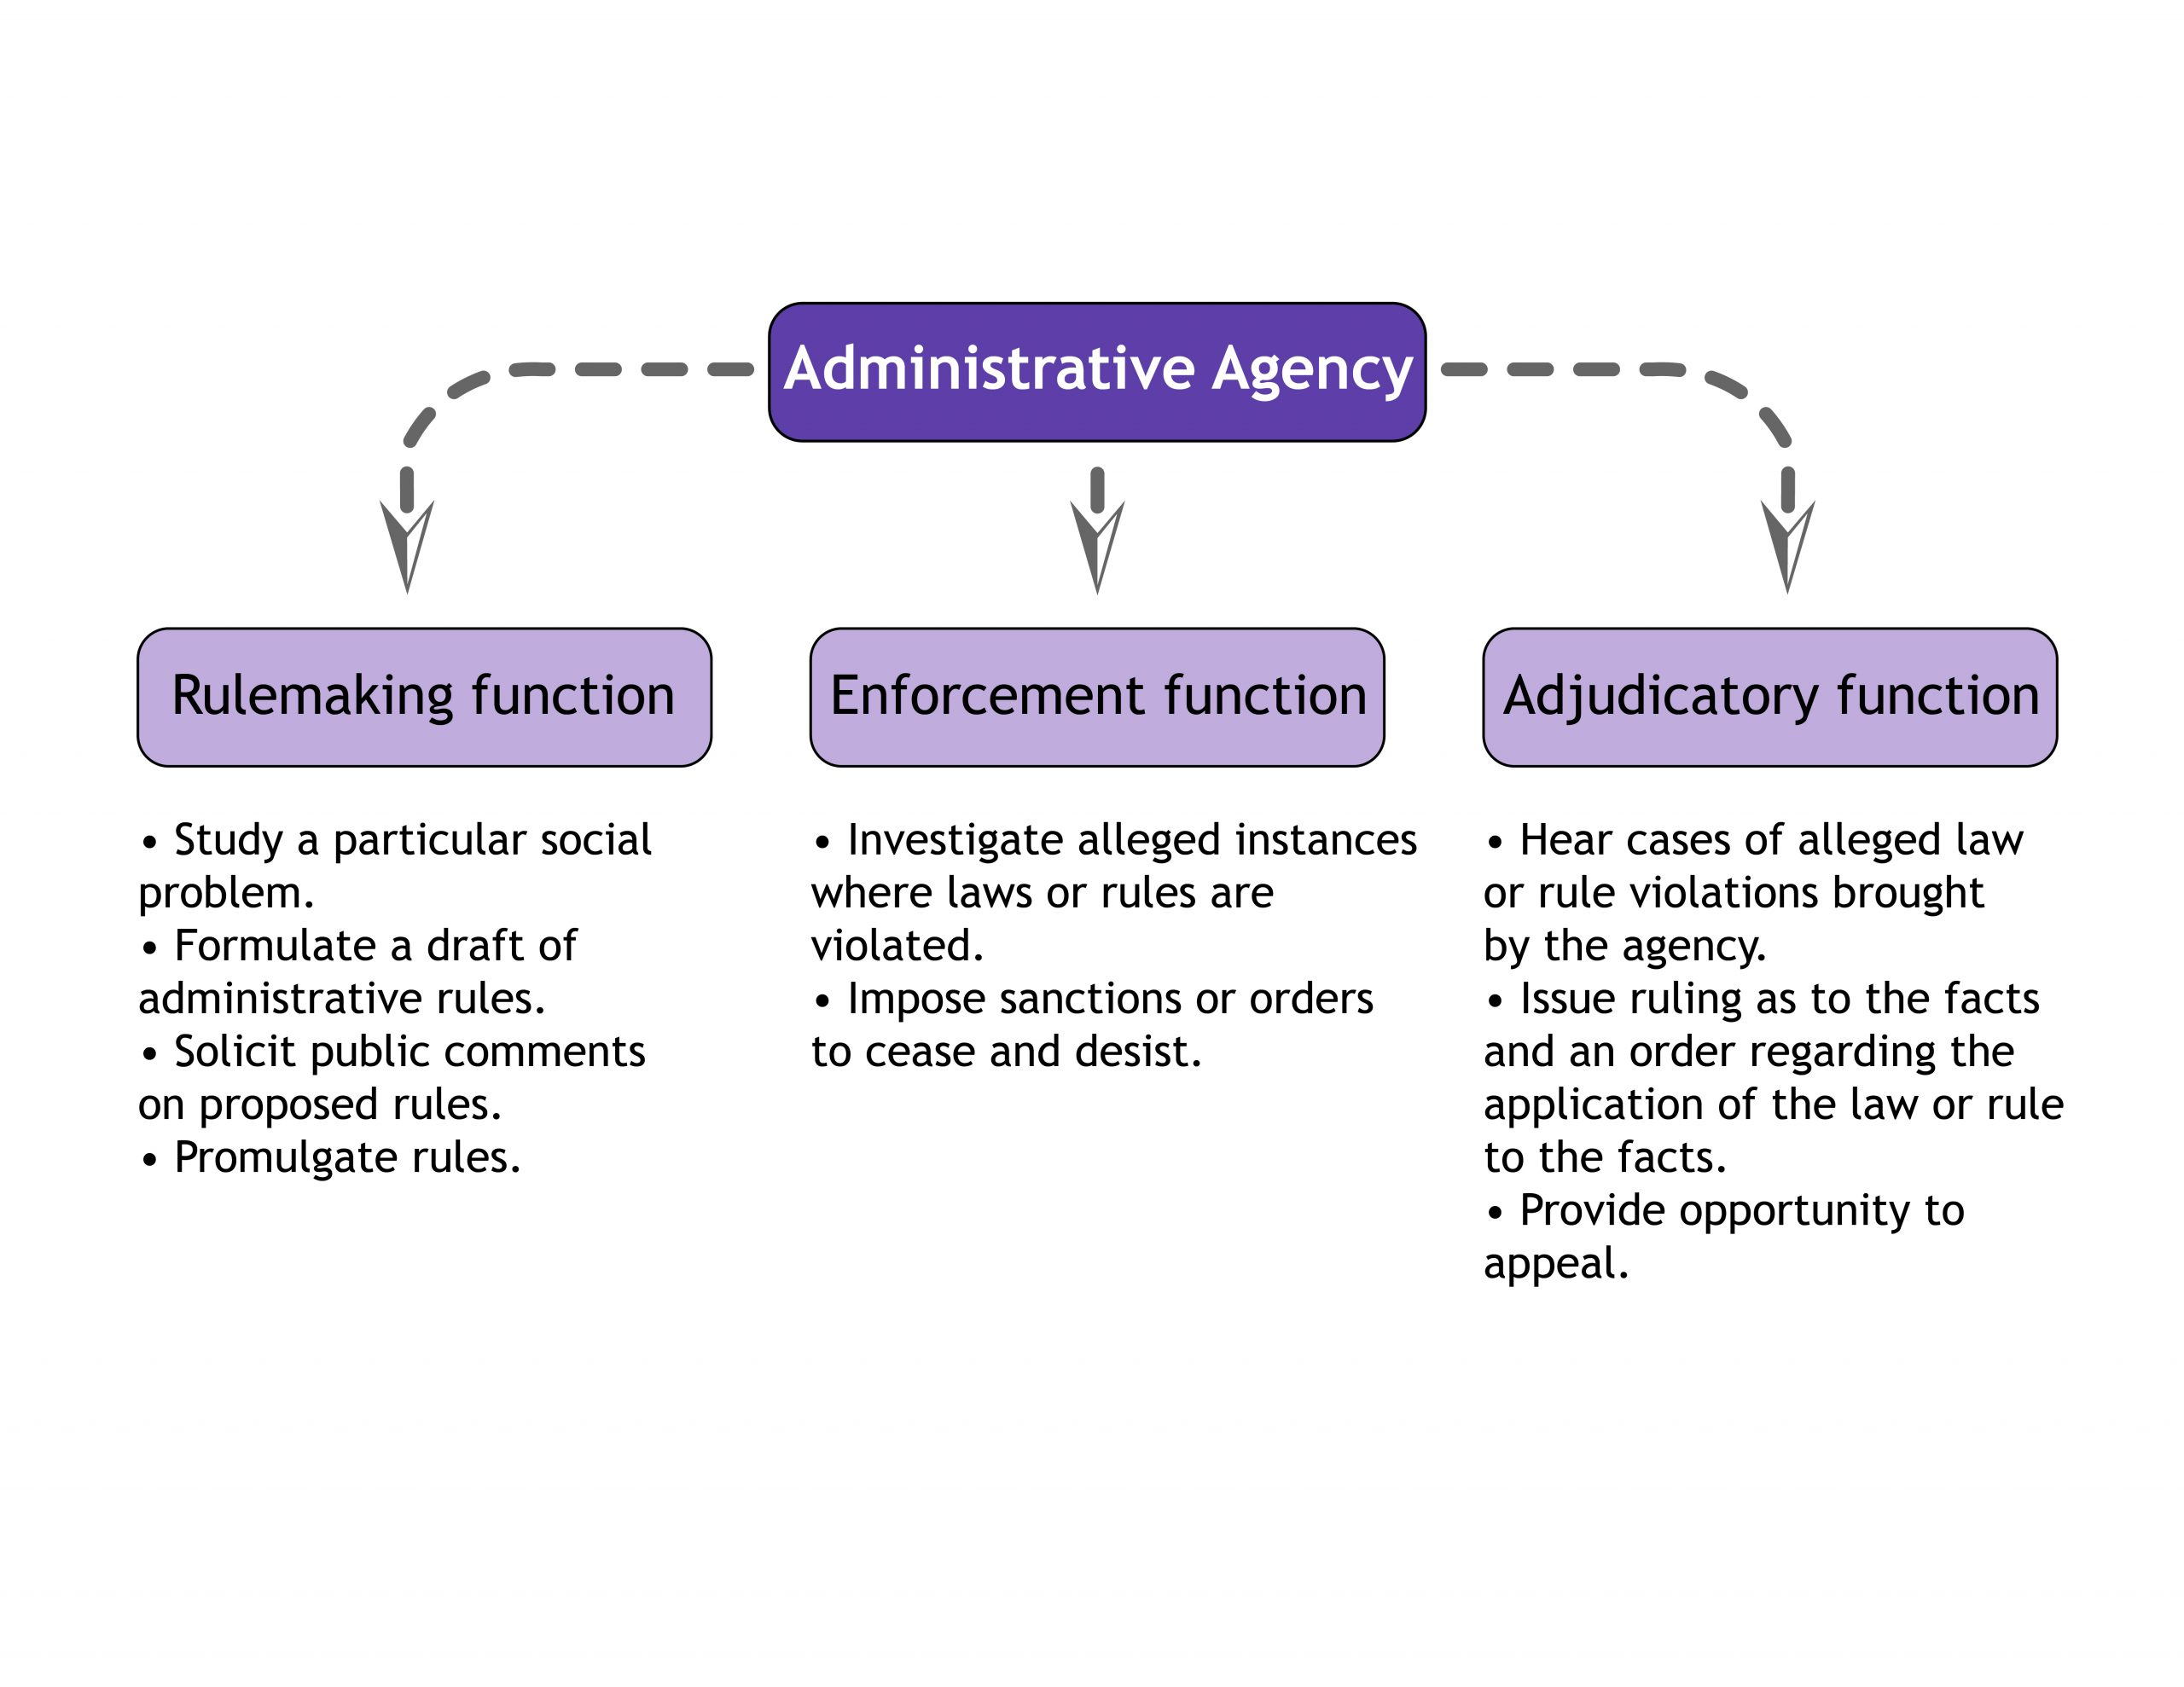 Graph showing rulemaking, enforcement, and adjudicatory functions of administrative agencies